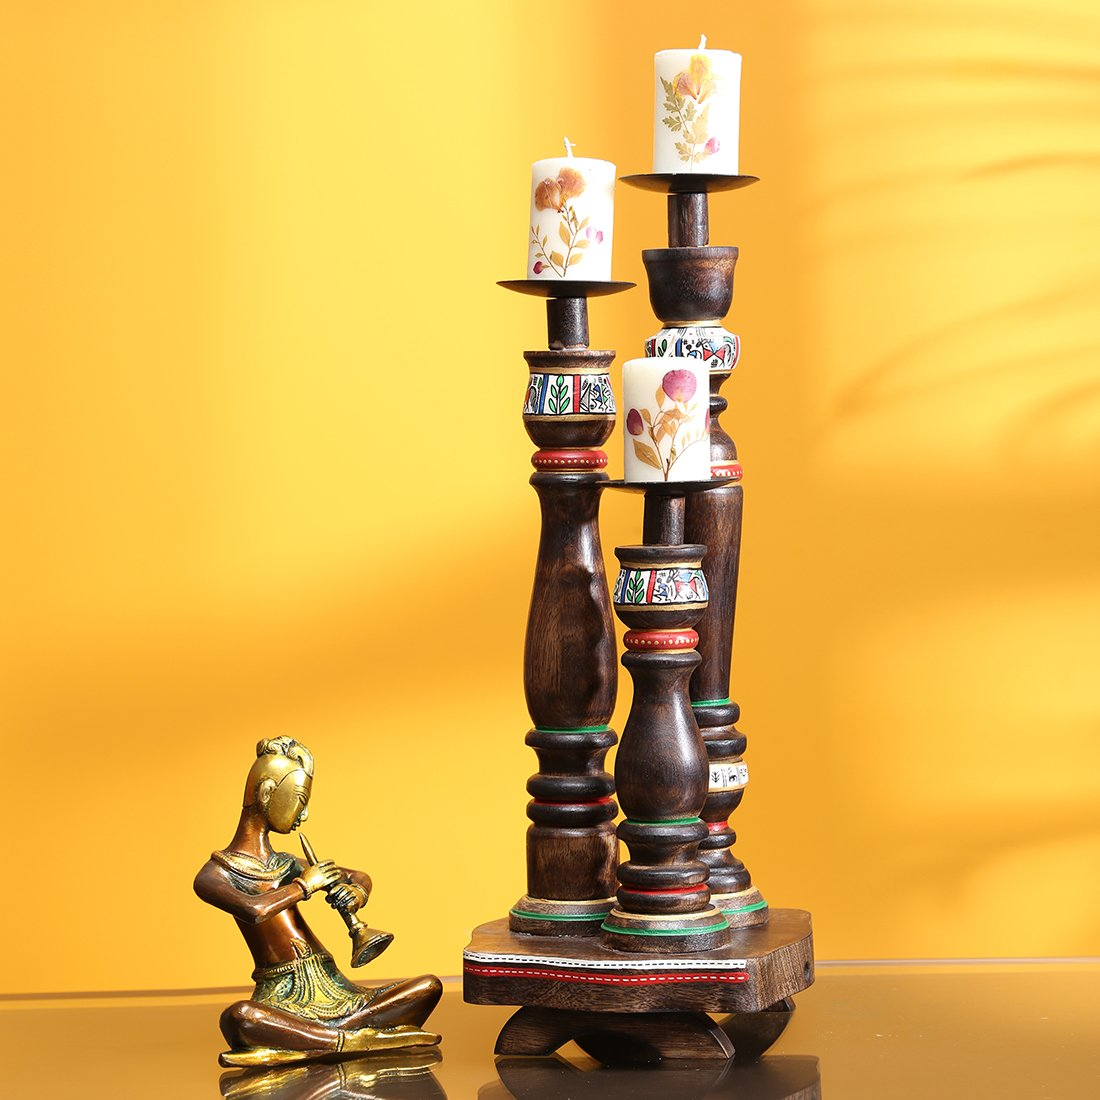 ExclusiveLane 'Candle Minarets' Warli Hand-Painted Candle Holders In Wood -Candle Holders Votive Candle Holder Tealight Candles Tea Light Home DÃcor T Light by ExclusiveLane (Image #1)